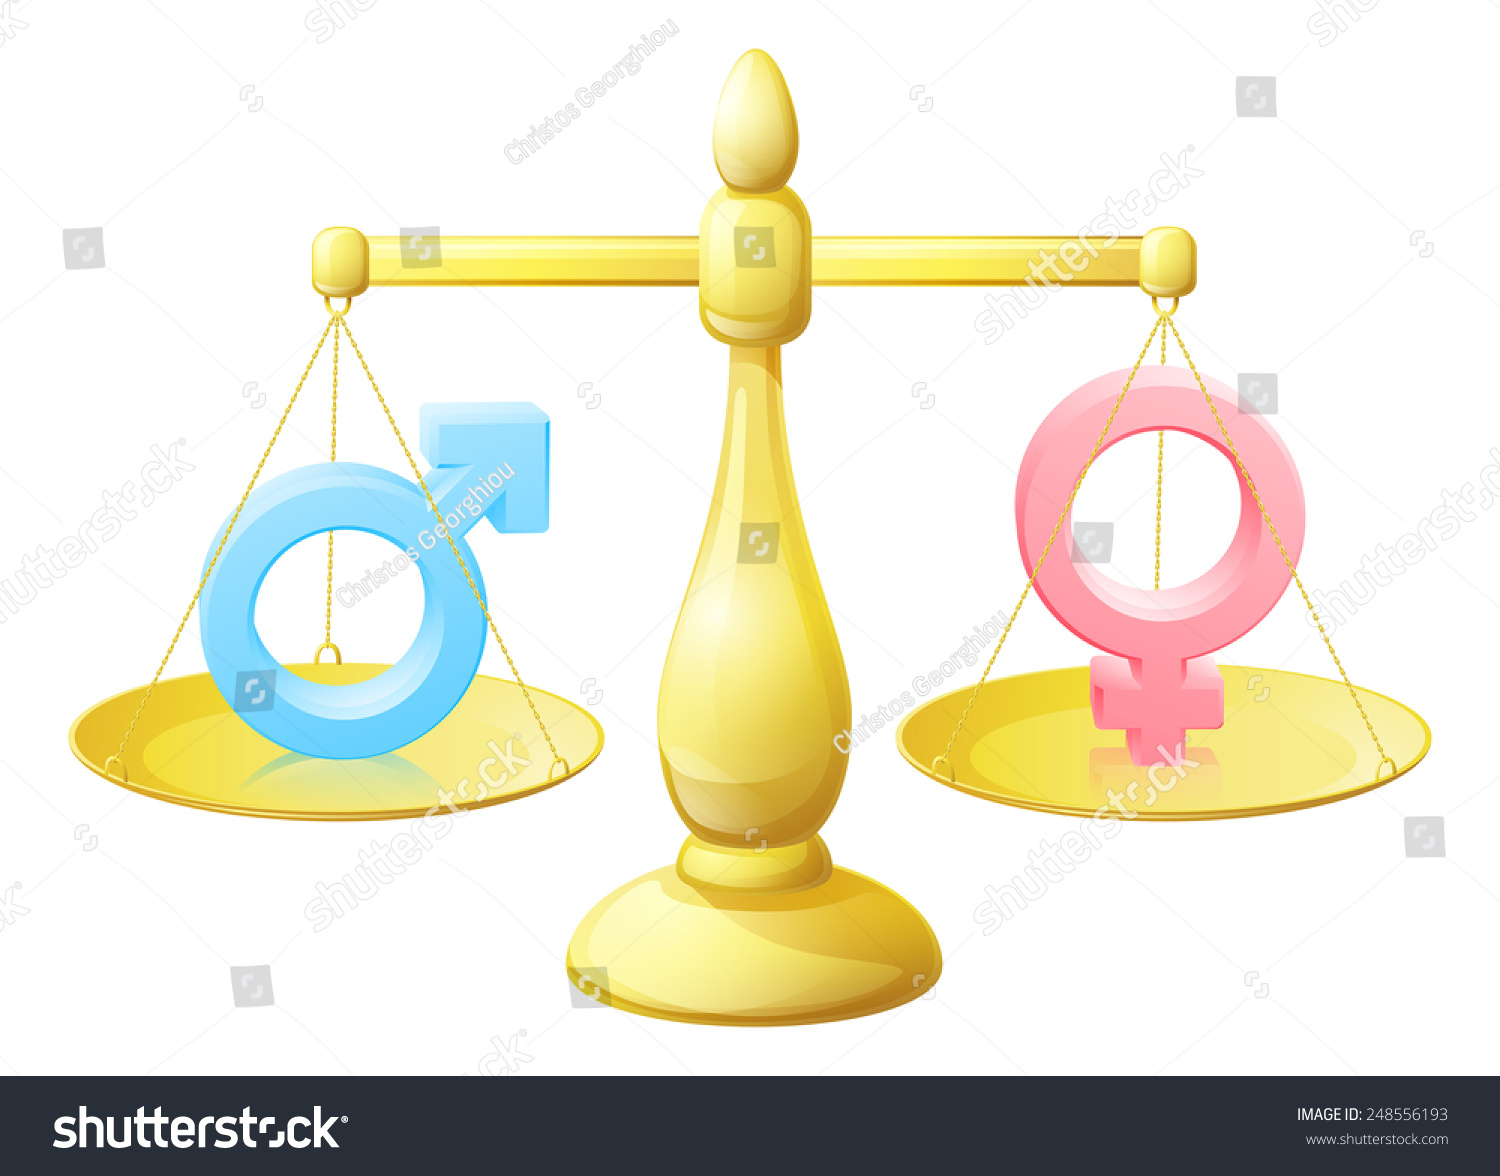 equal opportunity for women in the Women's right to equal employment opportunity has been recog- nized virtually  worldwide in fact, one-third of the total world labor force consists of women.